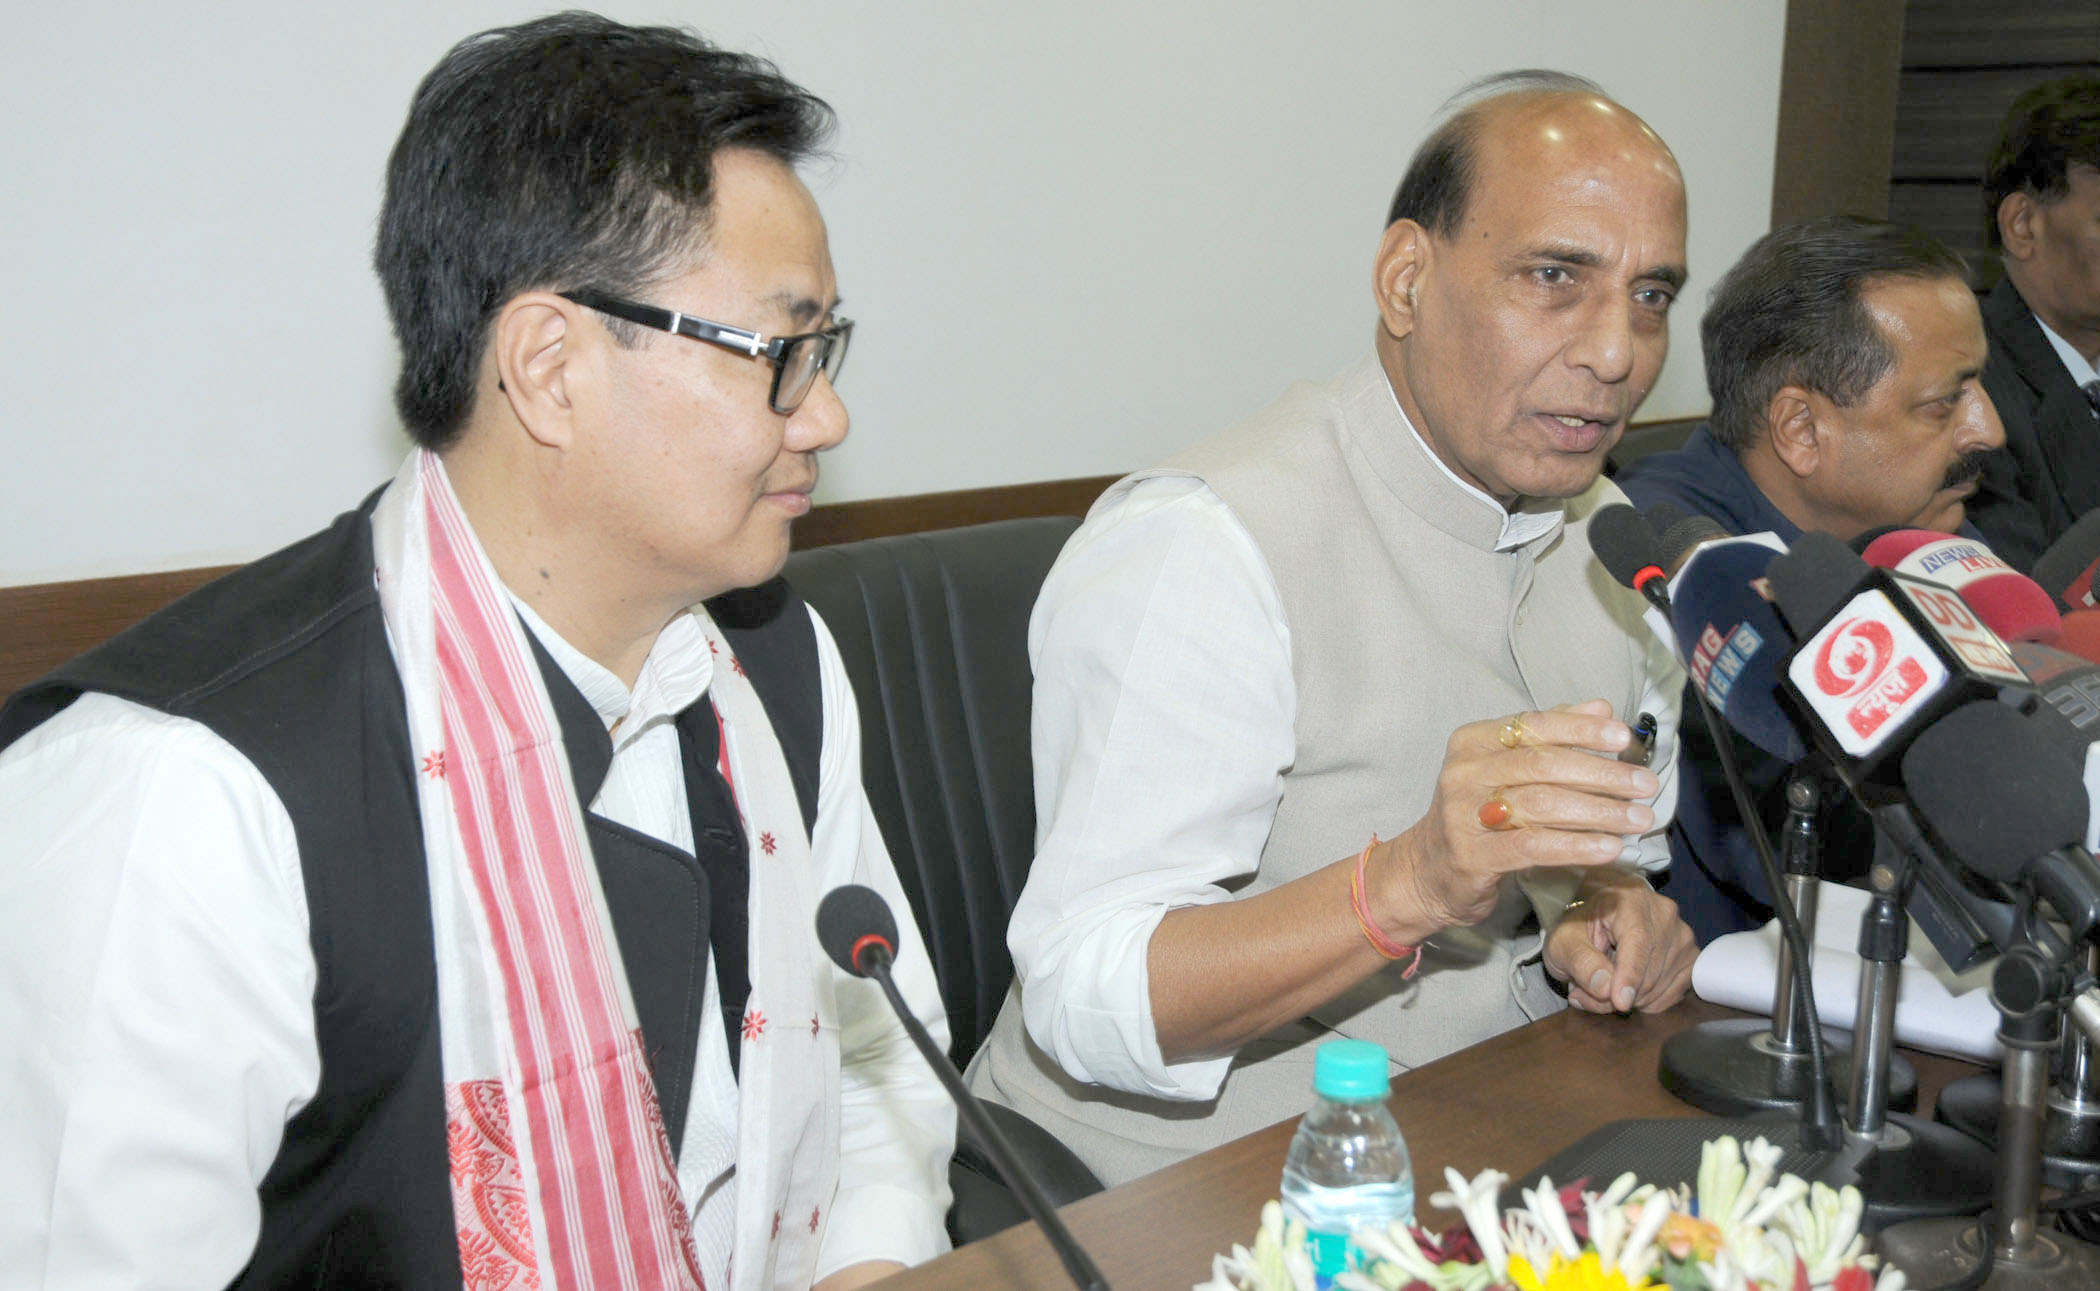 The Union Home Minister, Shri Rajnath Singh addressing a press conference after charing the meeting of the Chief Ministers of Eight North Eastern States on Security & Development, in Guwahati on July 11, 2015. The Minister of State for Development of North Eastern Region (I/C), Prime Minister's Office, Personnel, Public Grievances & Pensions, Department of Atomic Energy, Department of Space, Dr. Jitendra Singh and the Minister of State for Home Affairs, Shri Kiren Rijiju are also seen.